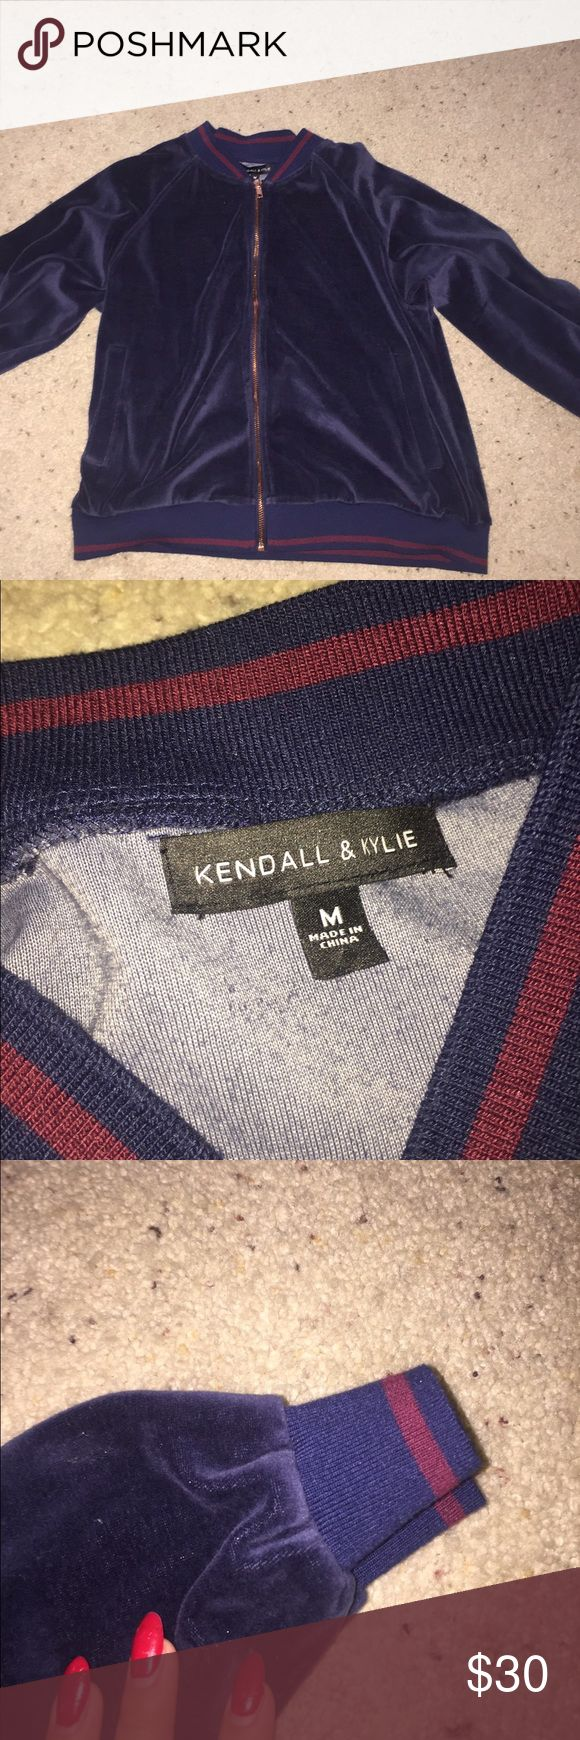 Velvet zip up Kendal&kylie jacket Burgundy stripes, gold zip up. Never worn, never had the chance too. Kendal&kylie collection PacSun Jackets & Coats